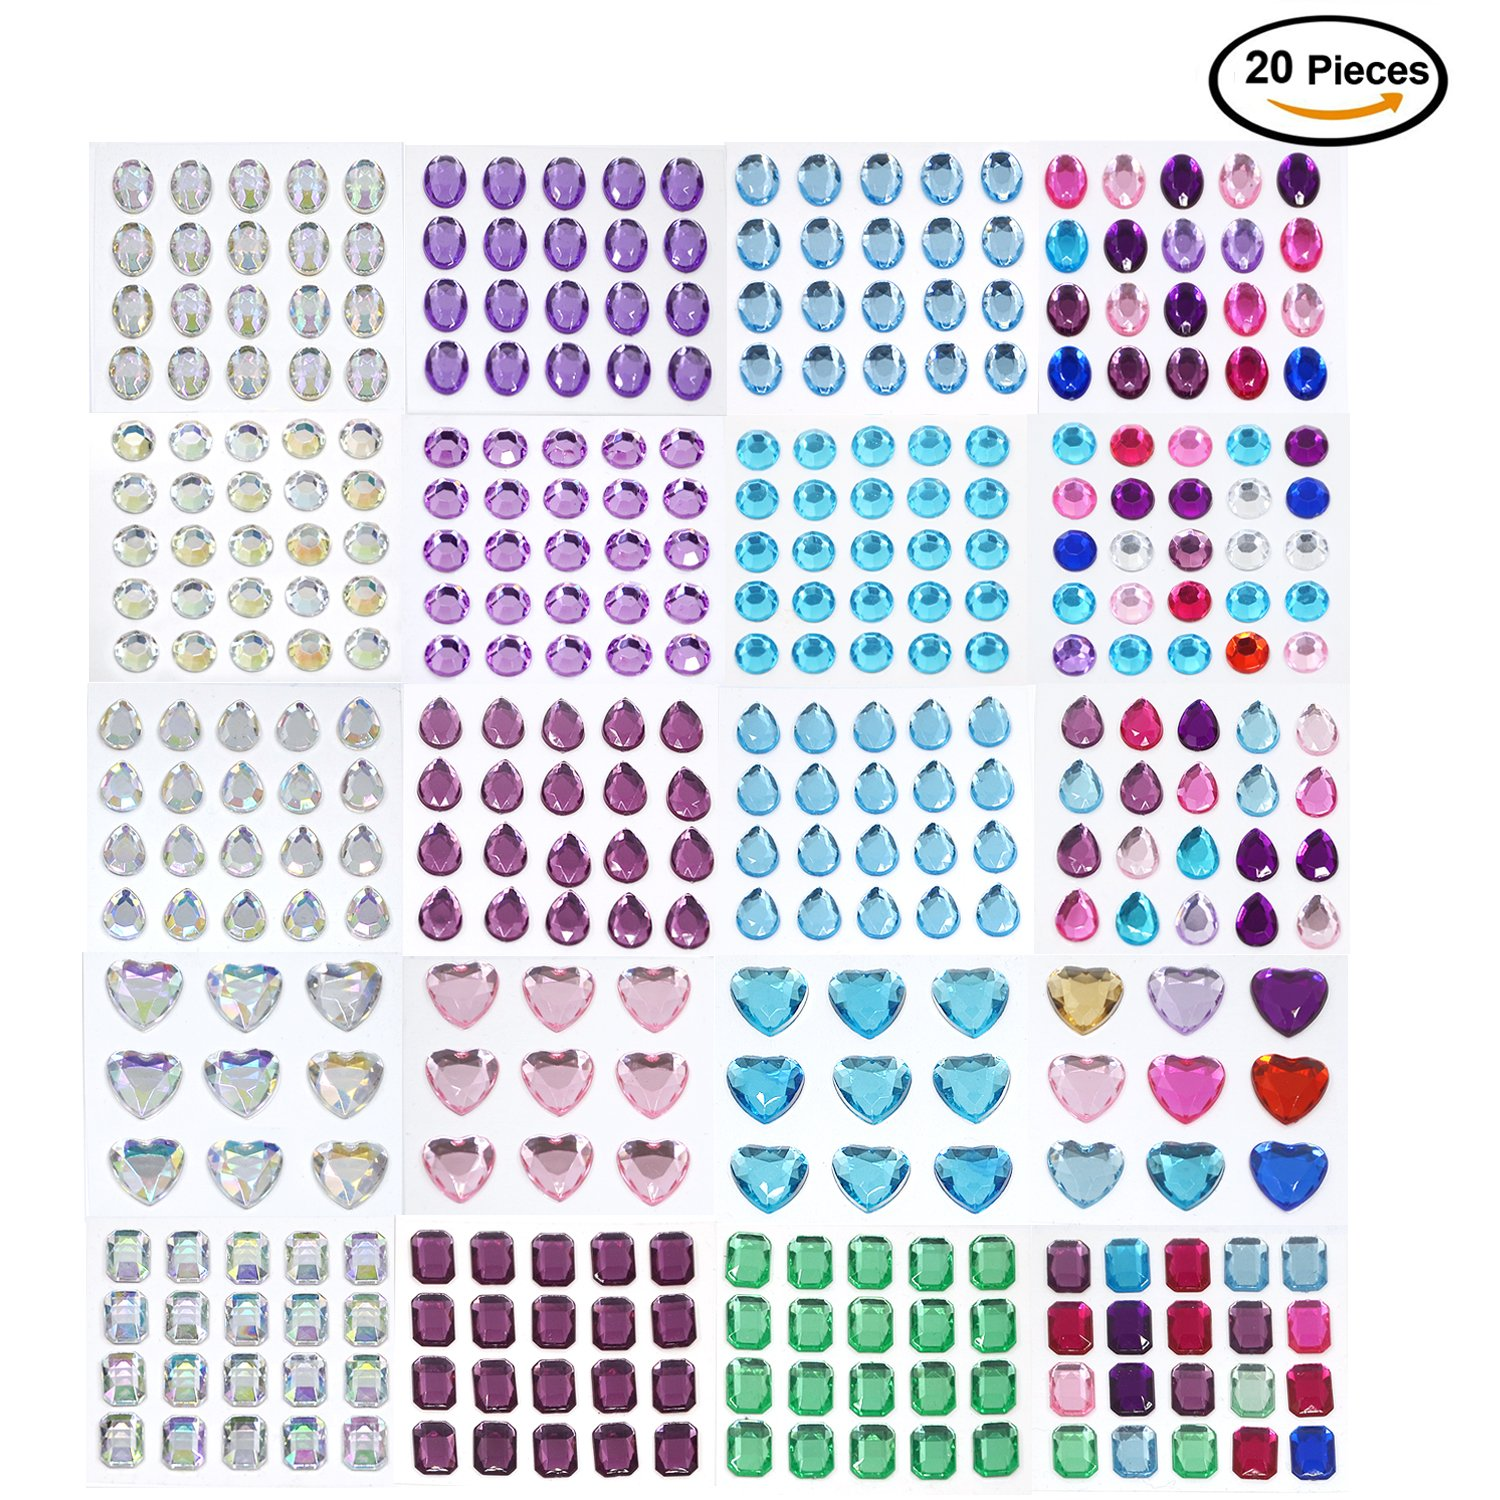 14 Sheets D-buy 2408 Pcs etc. 14 Colors for DIY Craft Scrap Book Children Picture Frames 3 Sizes Multicolor Self-Adhesive Rhinestone Sticker Sheet